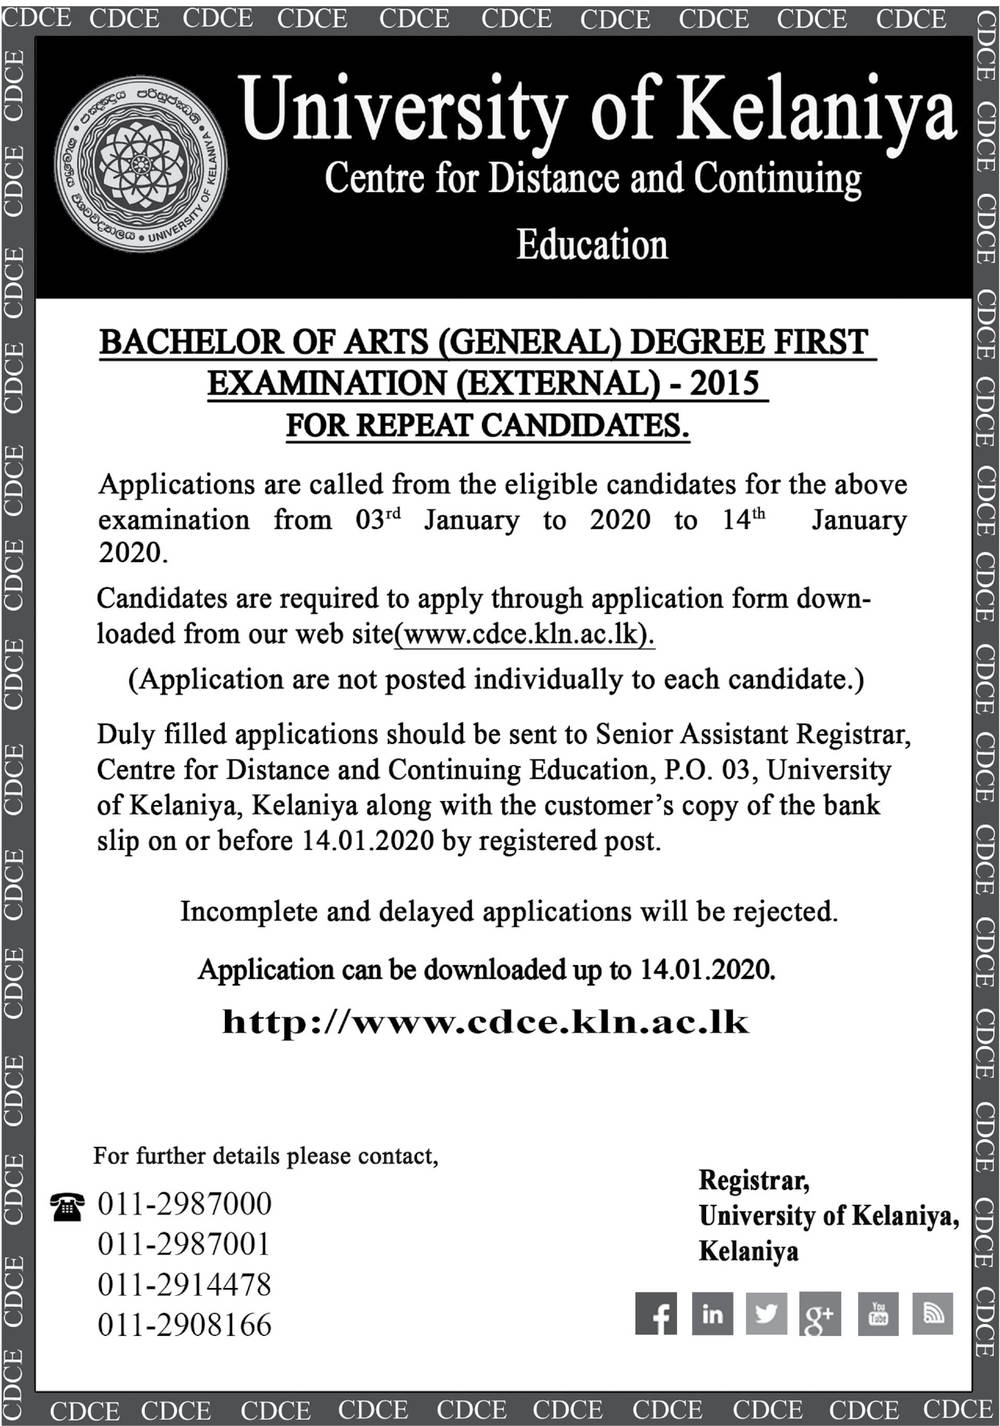 Bachelor of Arts (General) Degree First Examination (external) - Centre for Distance & Continuing - University of Kelaniya